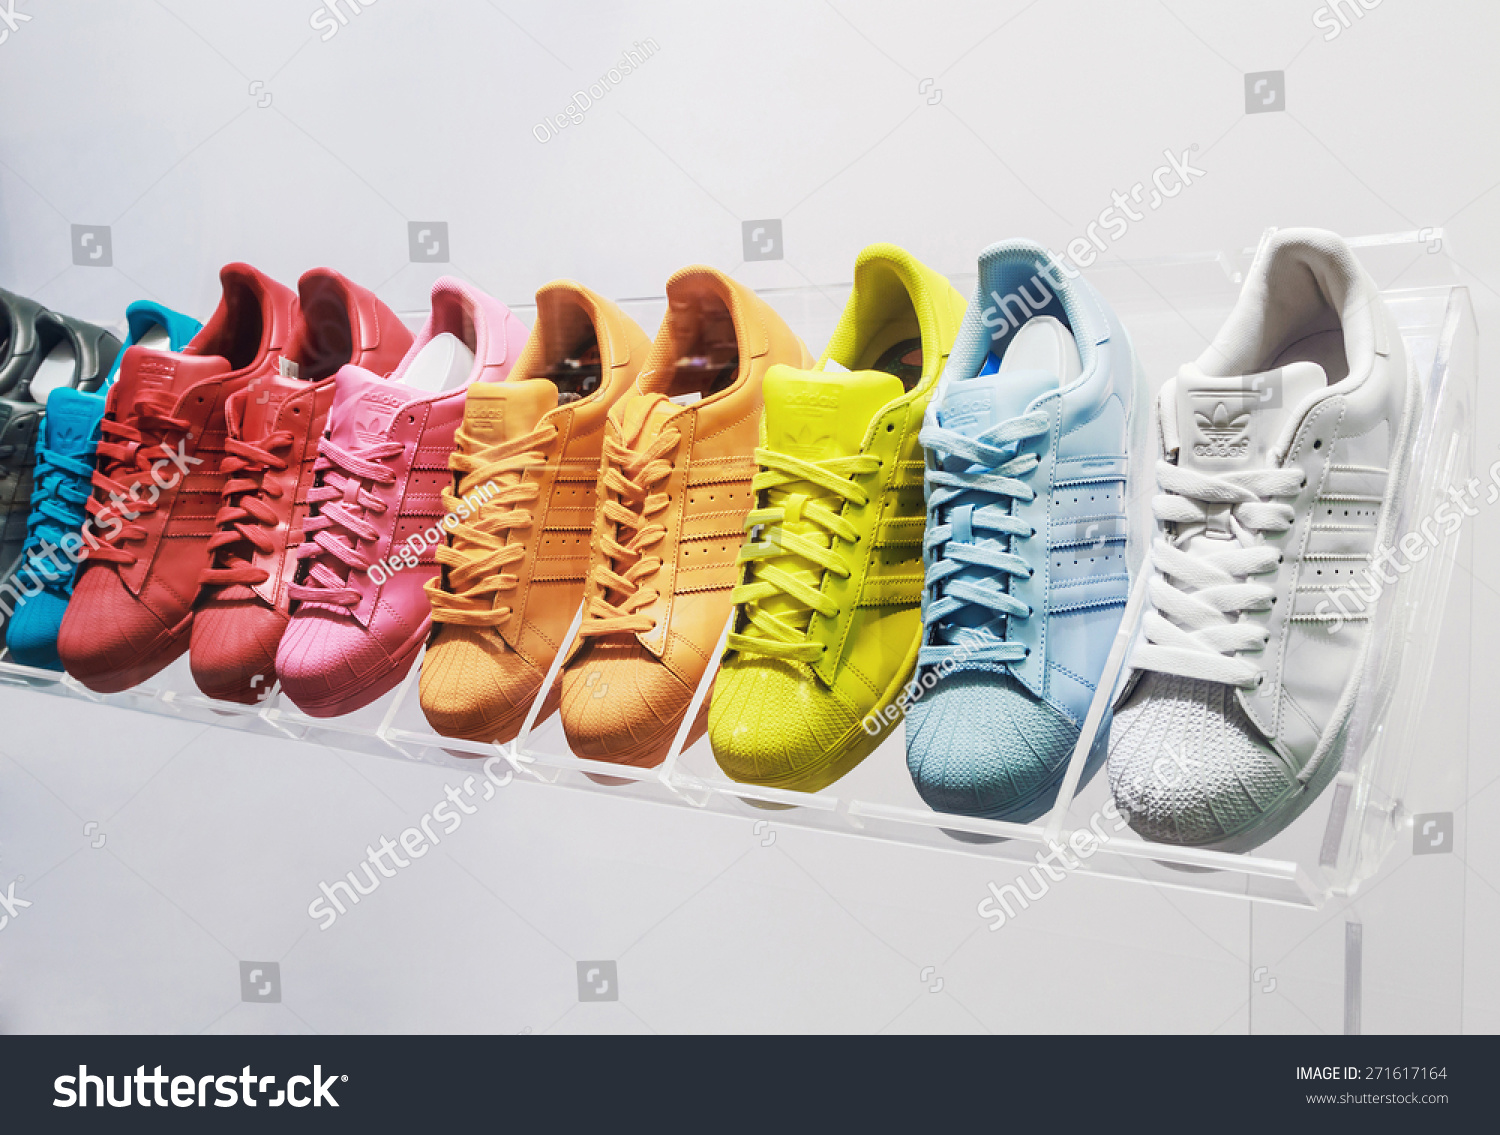 Moscow russia april 19 2015 adidas stock photo 271617164 shutterstock moscow russia april 19 2015 adidas originals sneakers in a shoe store buycottarizona Images